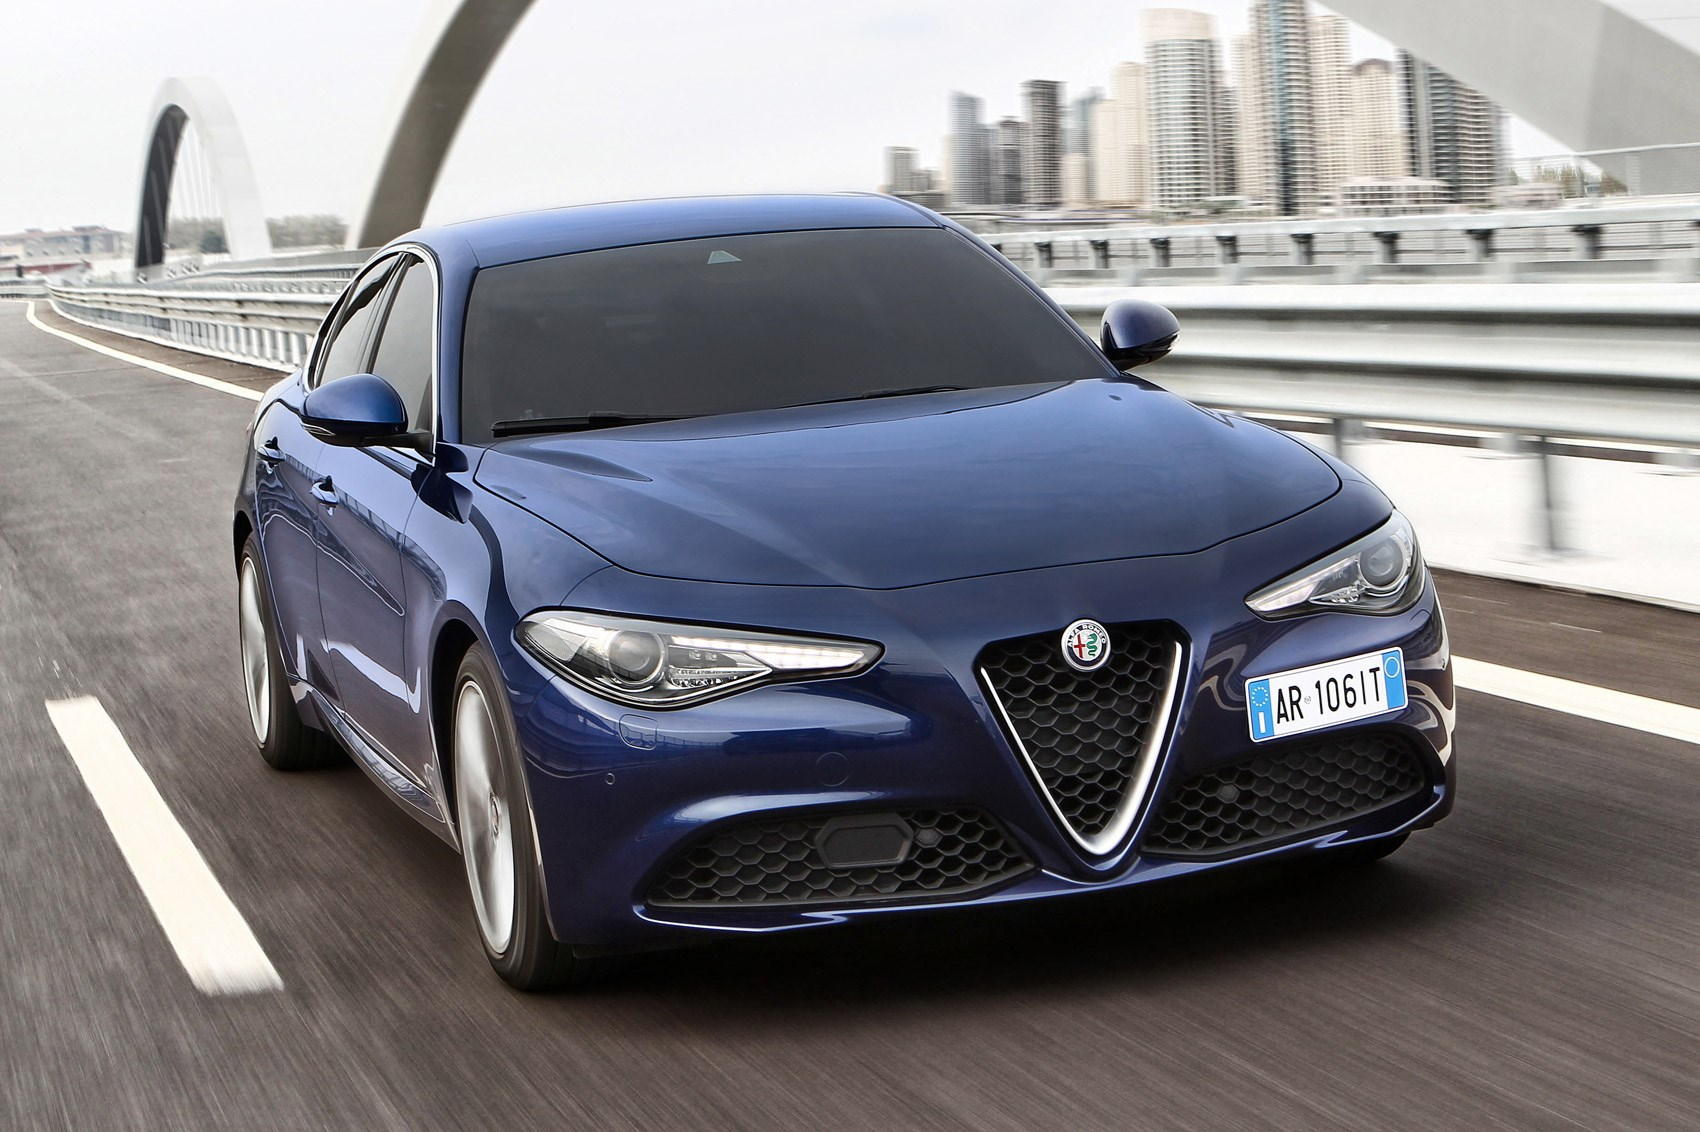 alfa romeo giulia 2 2 multijet 180 diesel 2016 review by car magazine. Black Bedroom Furniture Sets. Home Design Ideas